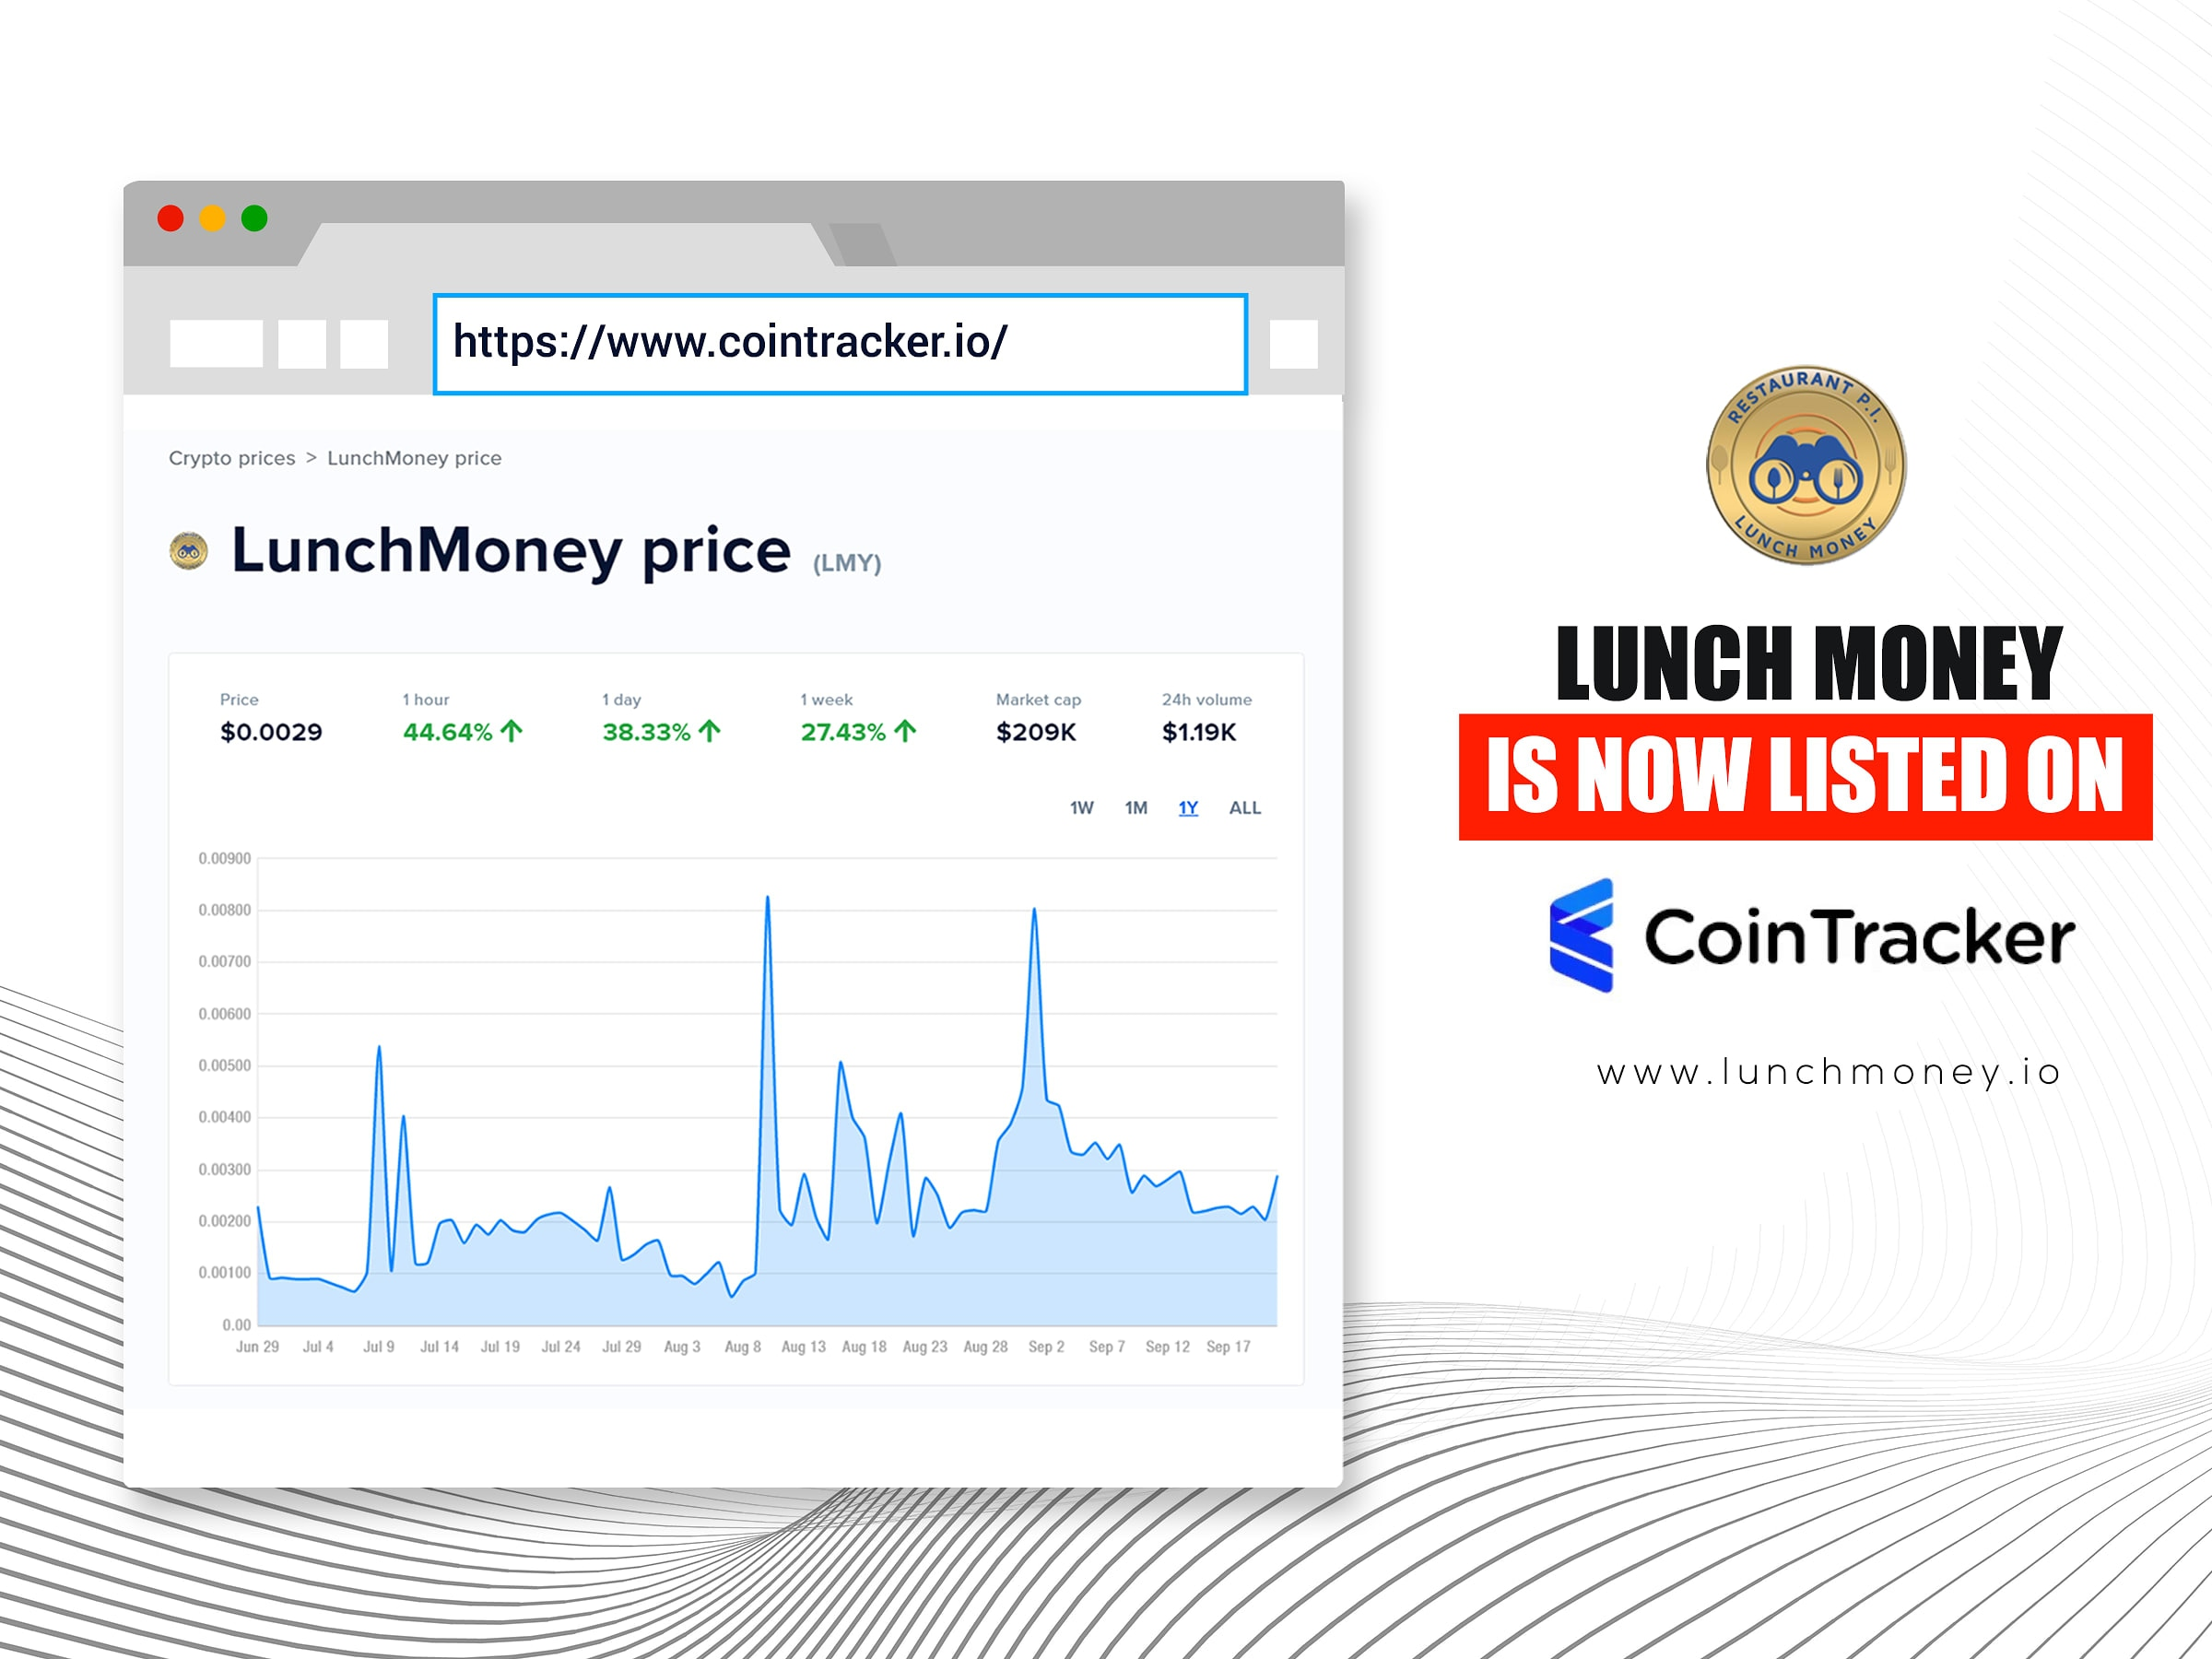 Follow Lunch Money Price and Trends on Cointracker